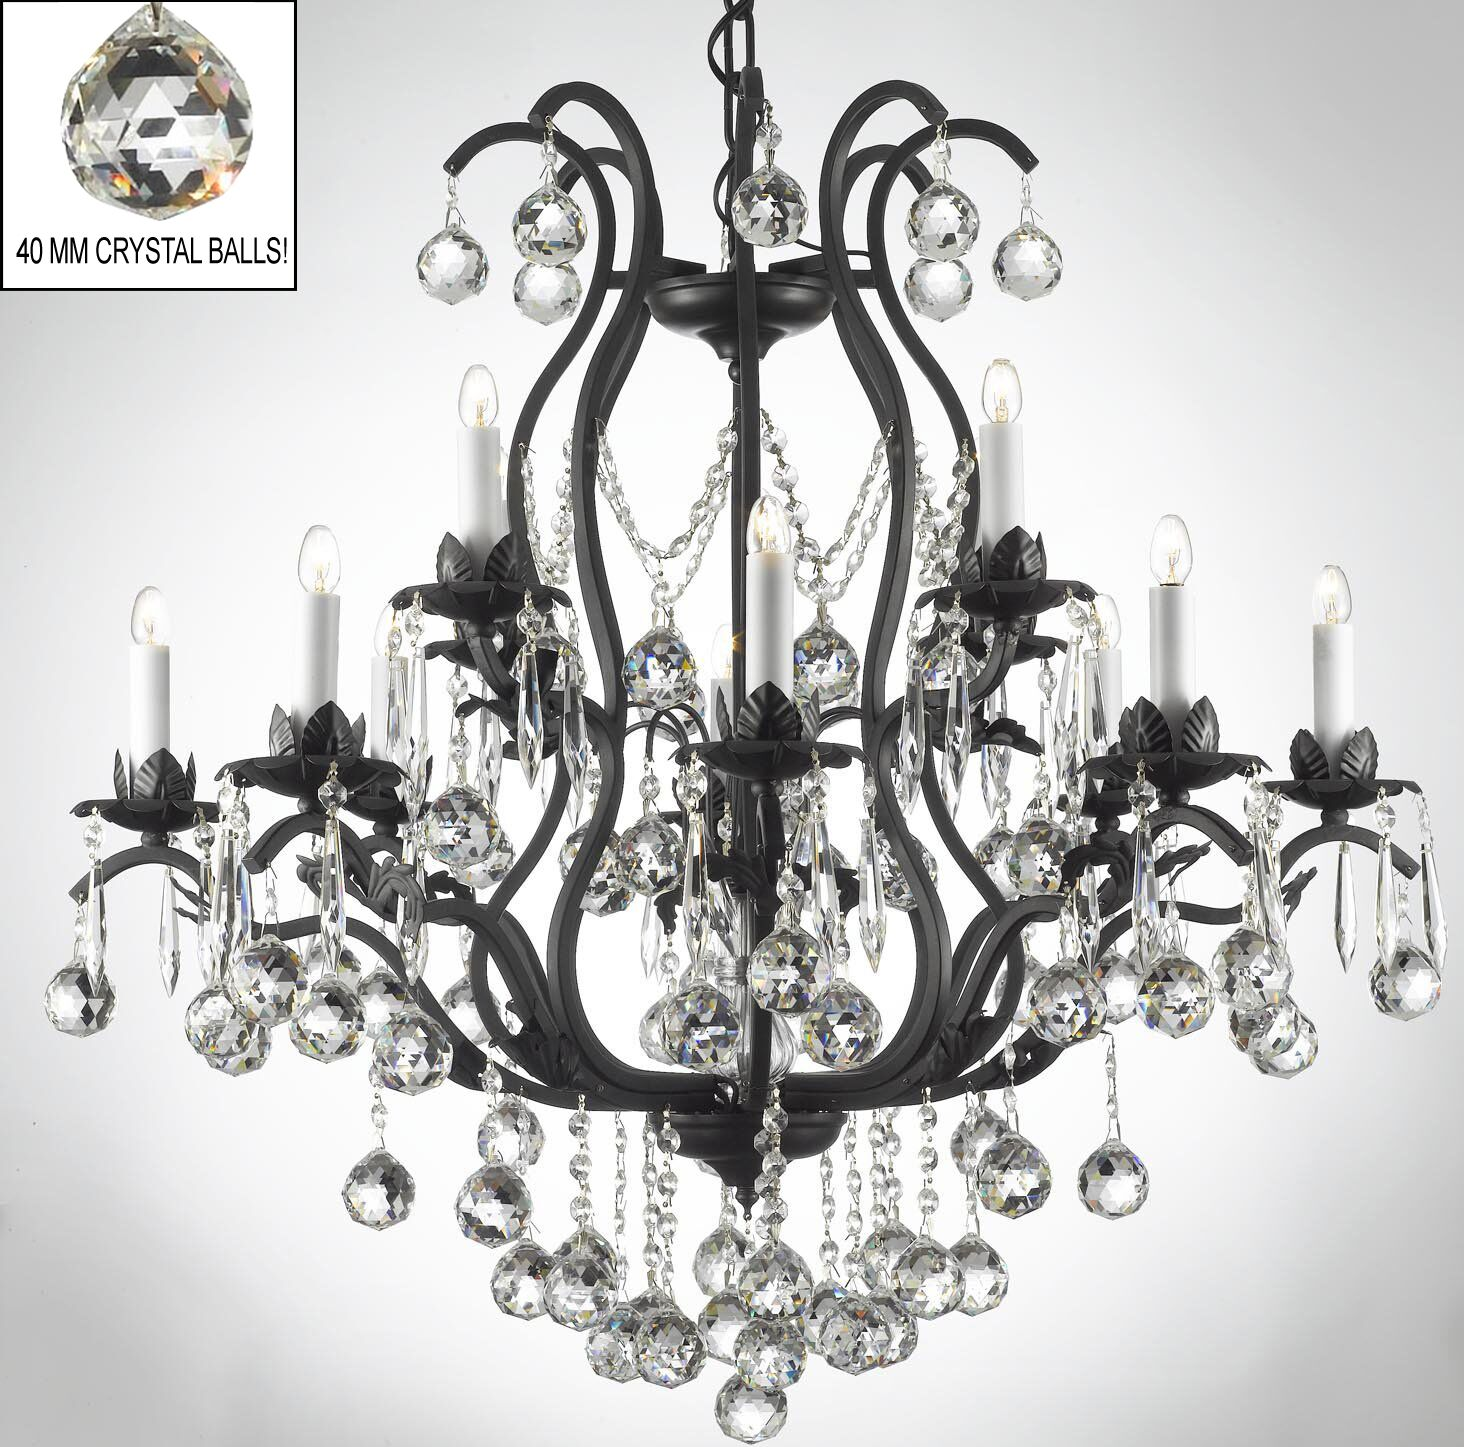 Alvan 12-Light 40W Candle Style Chandelier